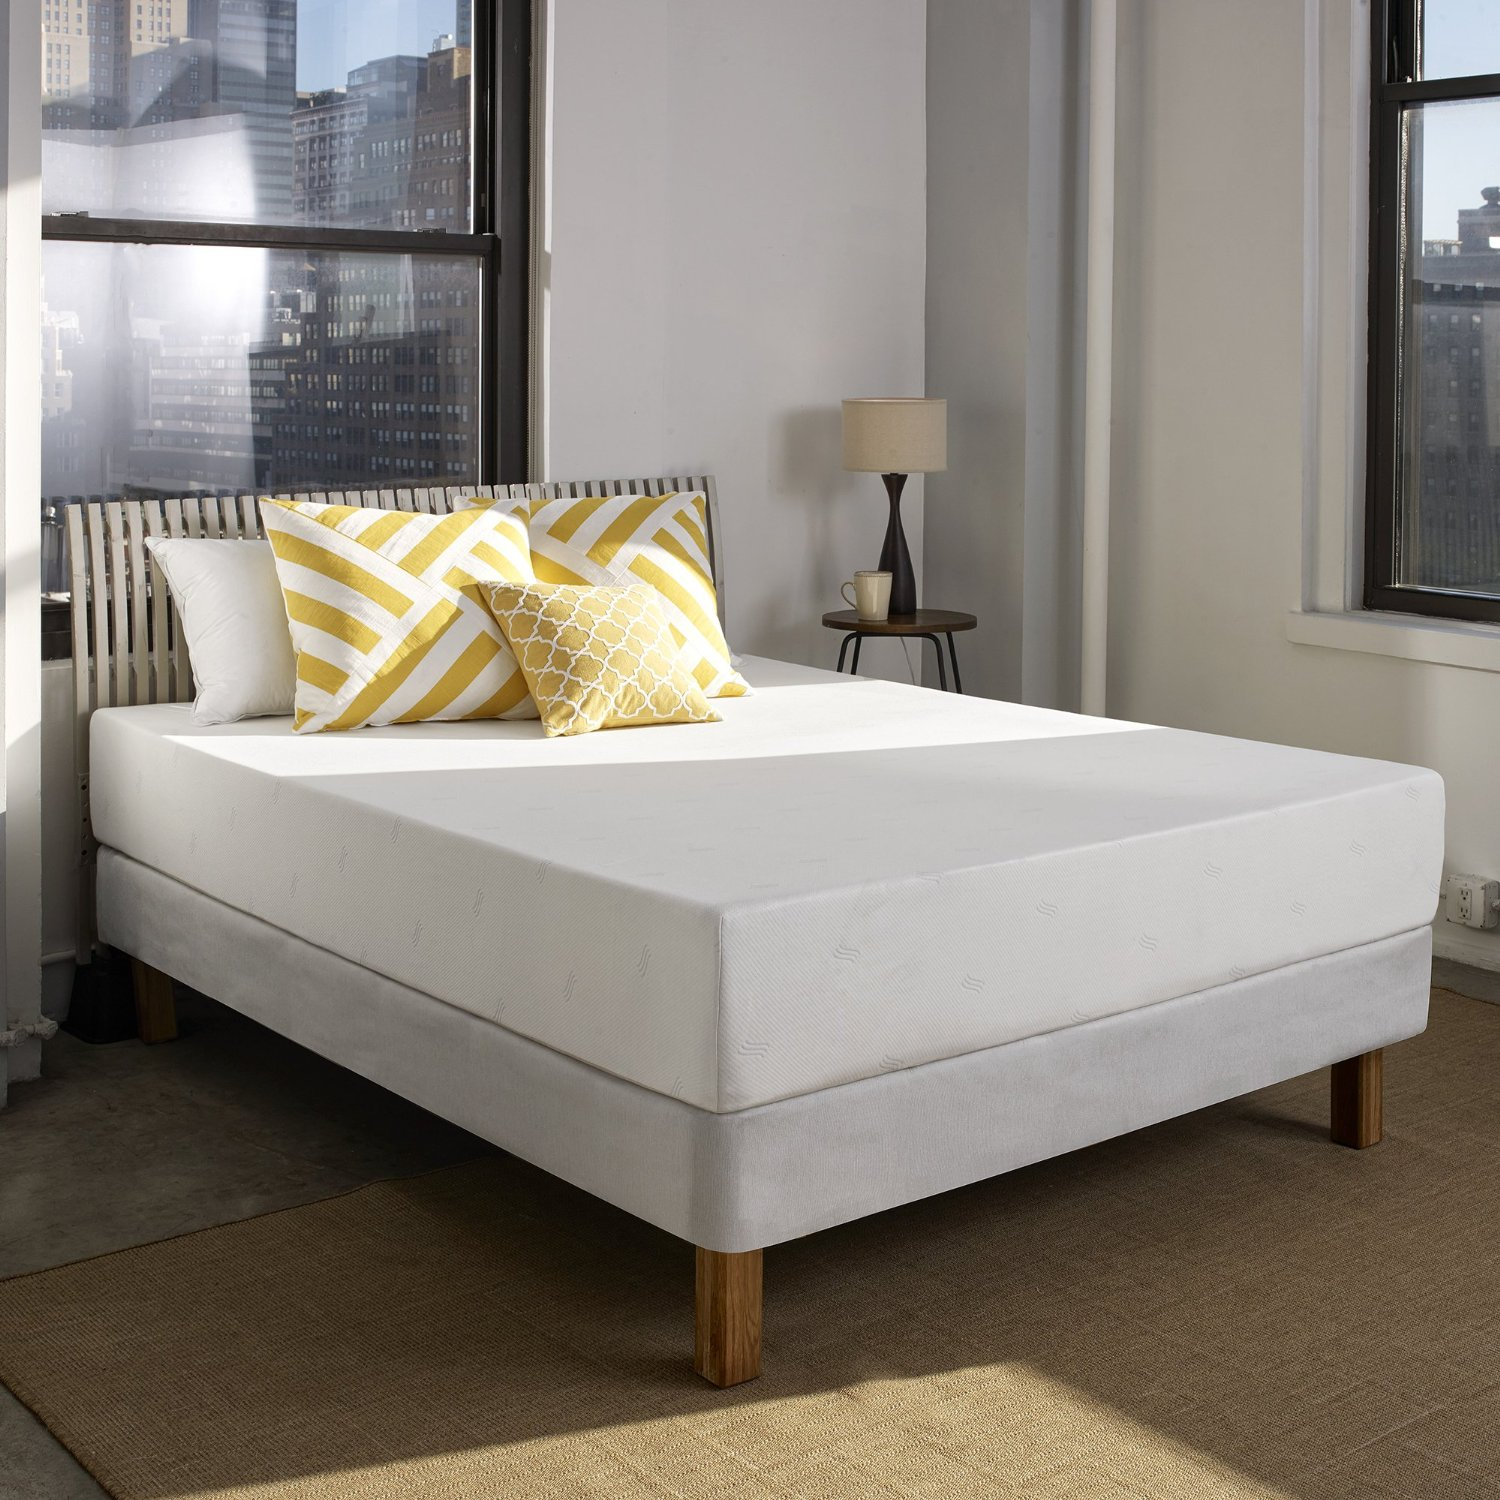 Shea 10-inch Memory Foam Mattress by Sleep Innovations